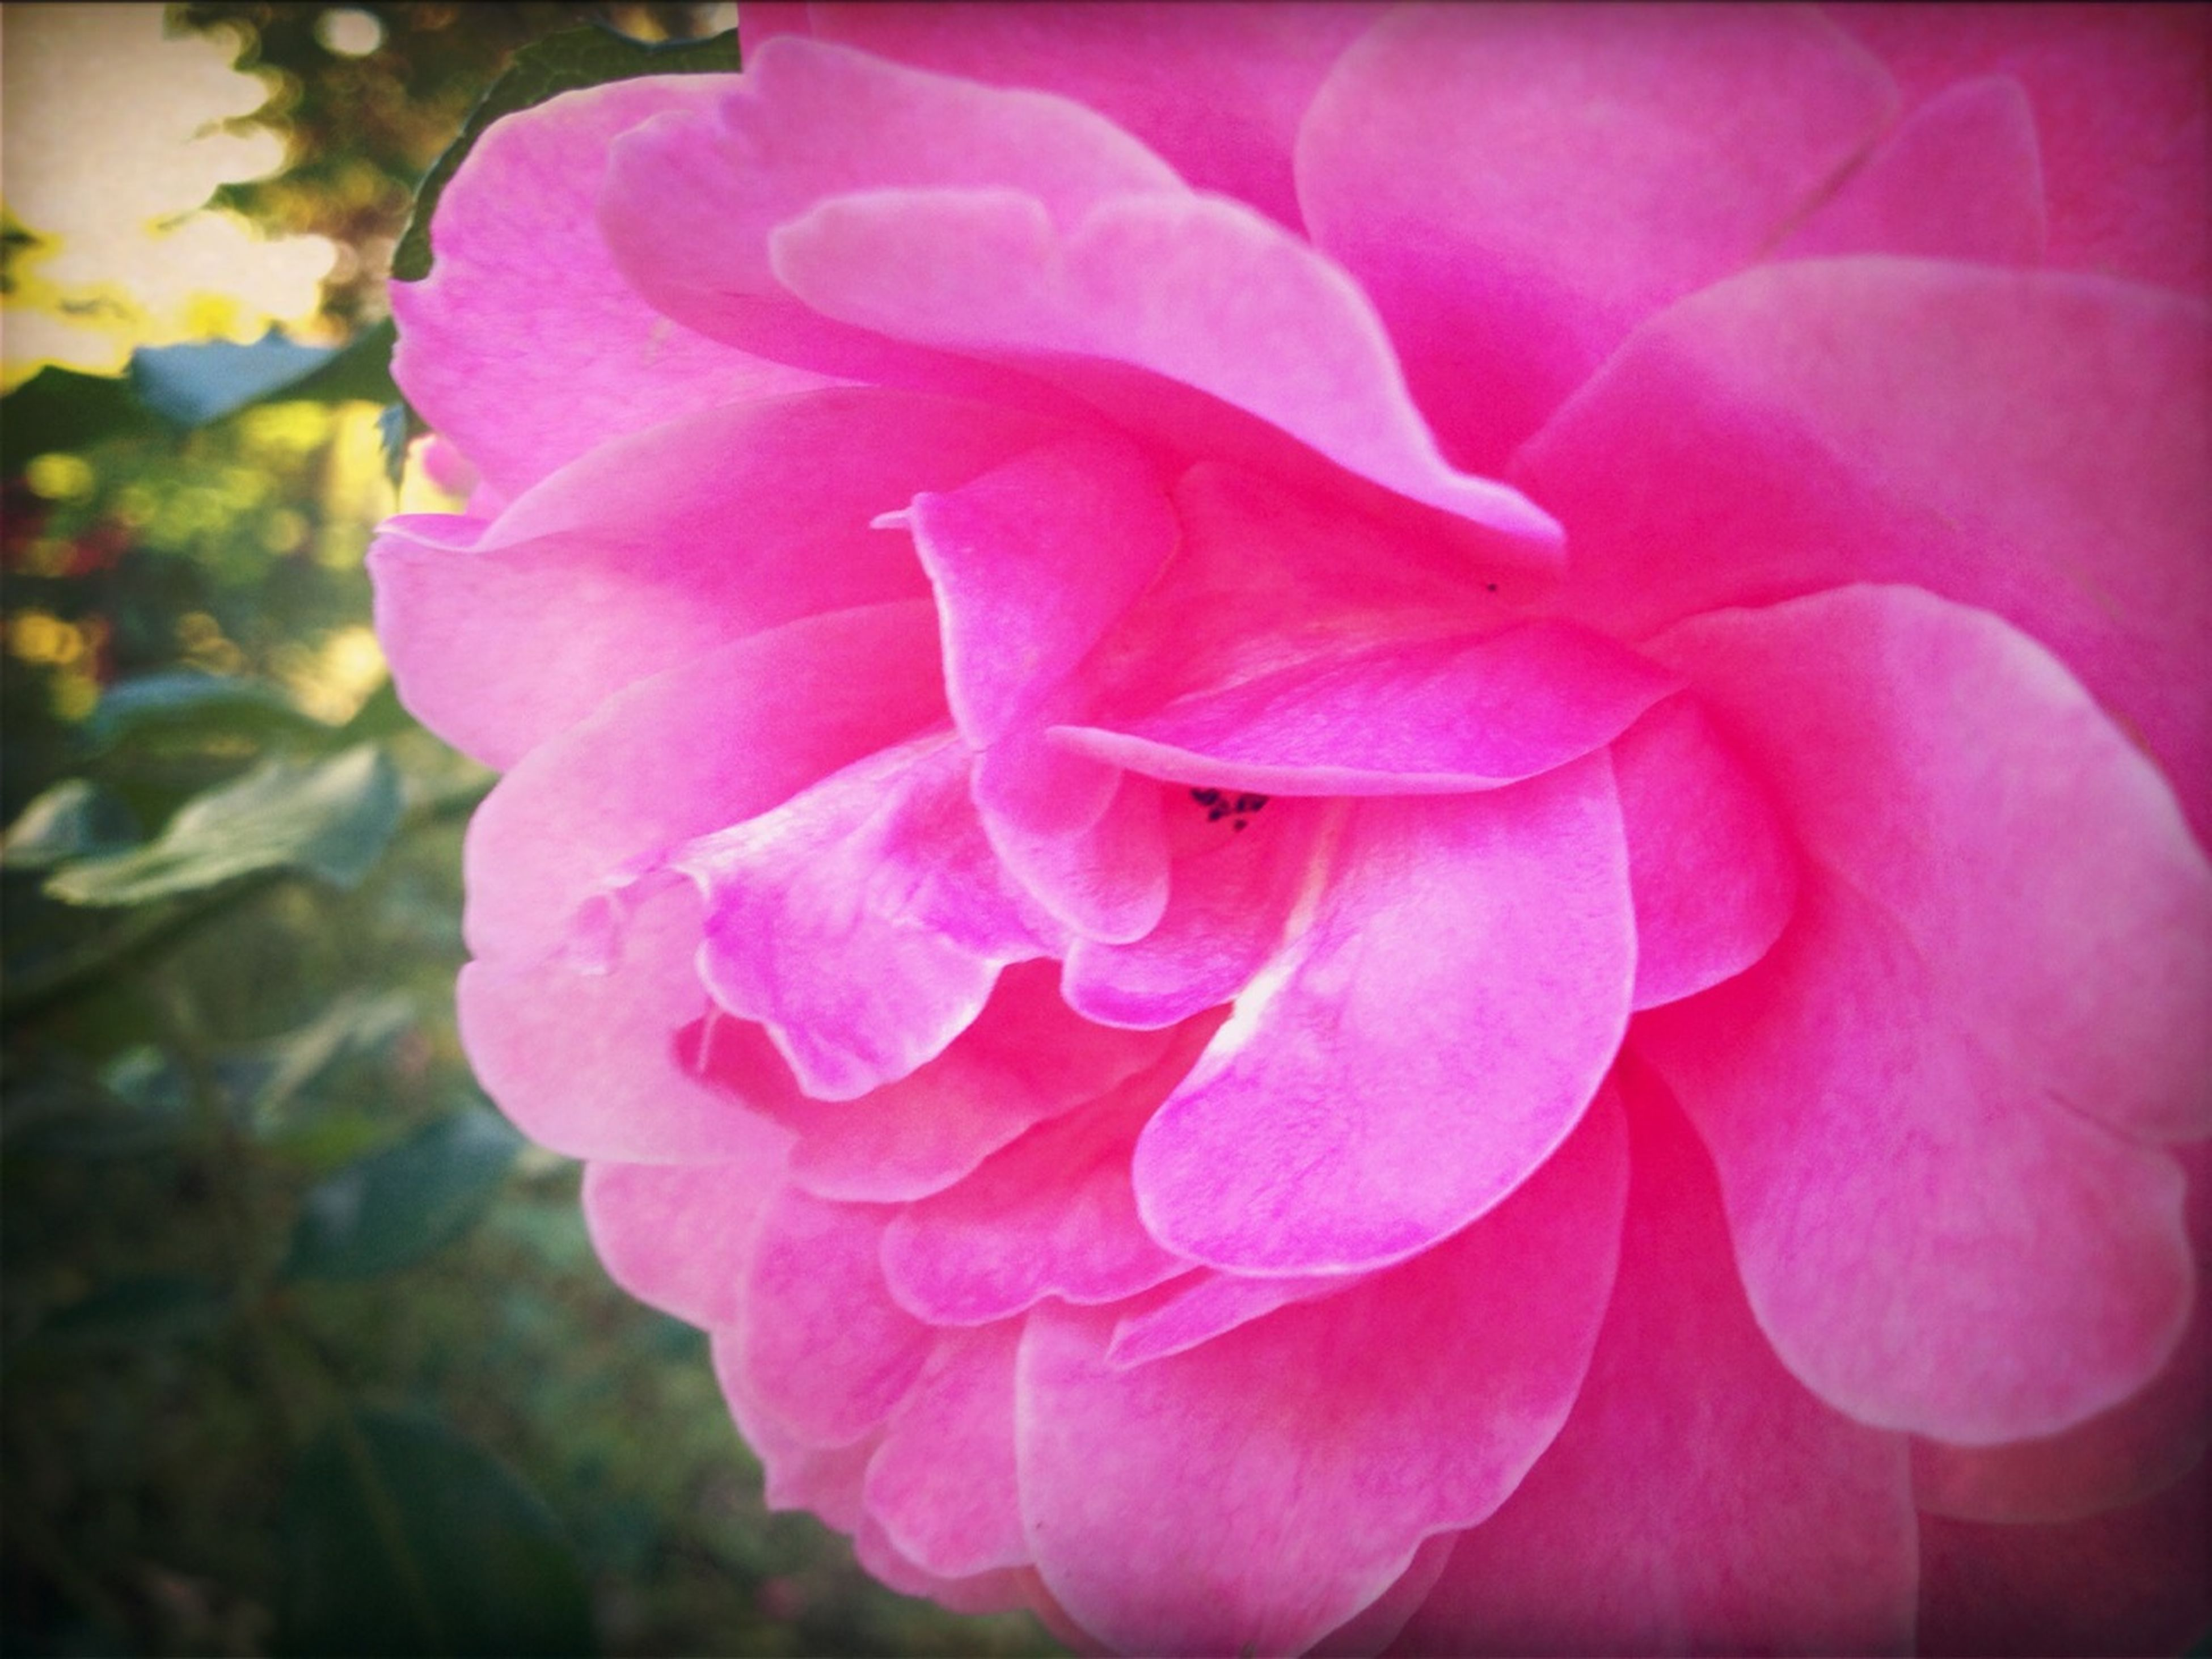 flower, petal, freshness, flower head, fragility, pink color, beauty in nature, growth, close-up, rose - flower, nature, blooming, single flower, pink, focus on foreground, in bloom, plant, blossom, rose, natural pattern